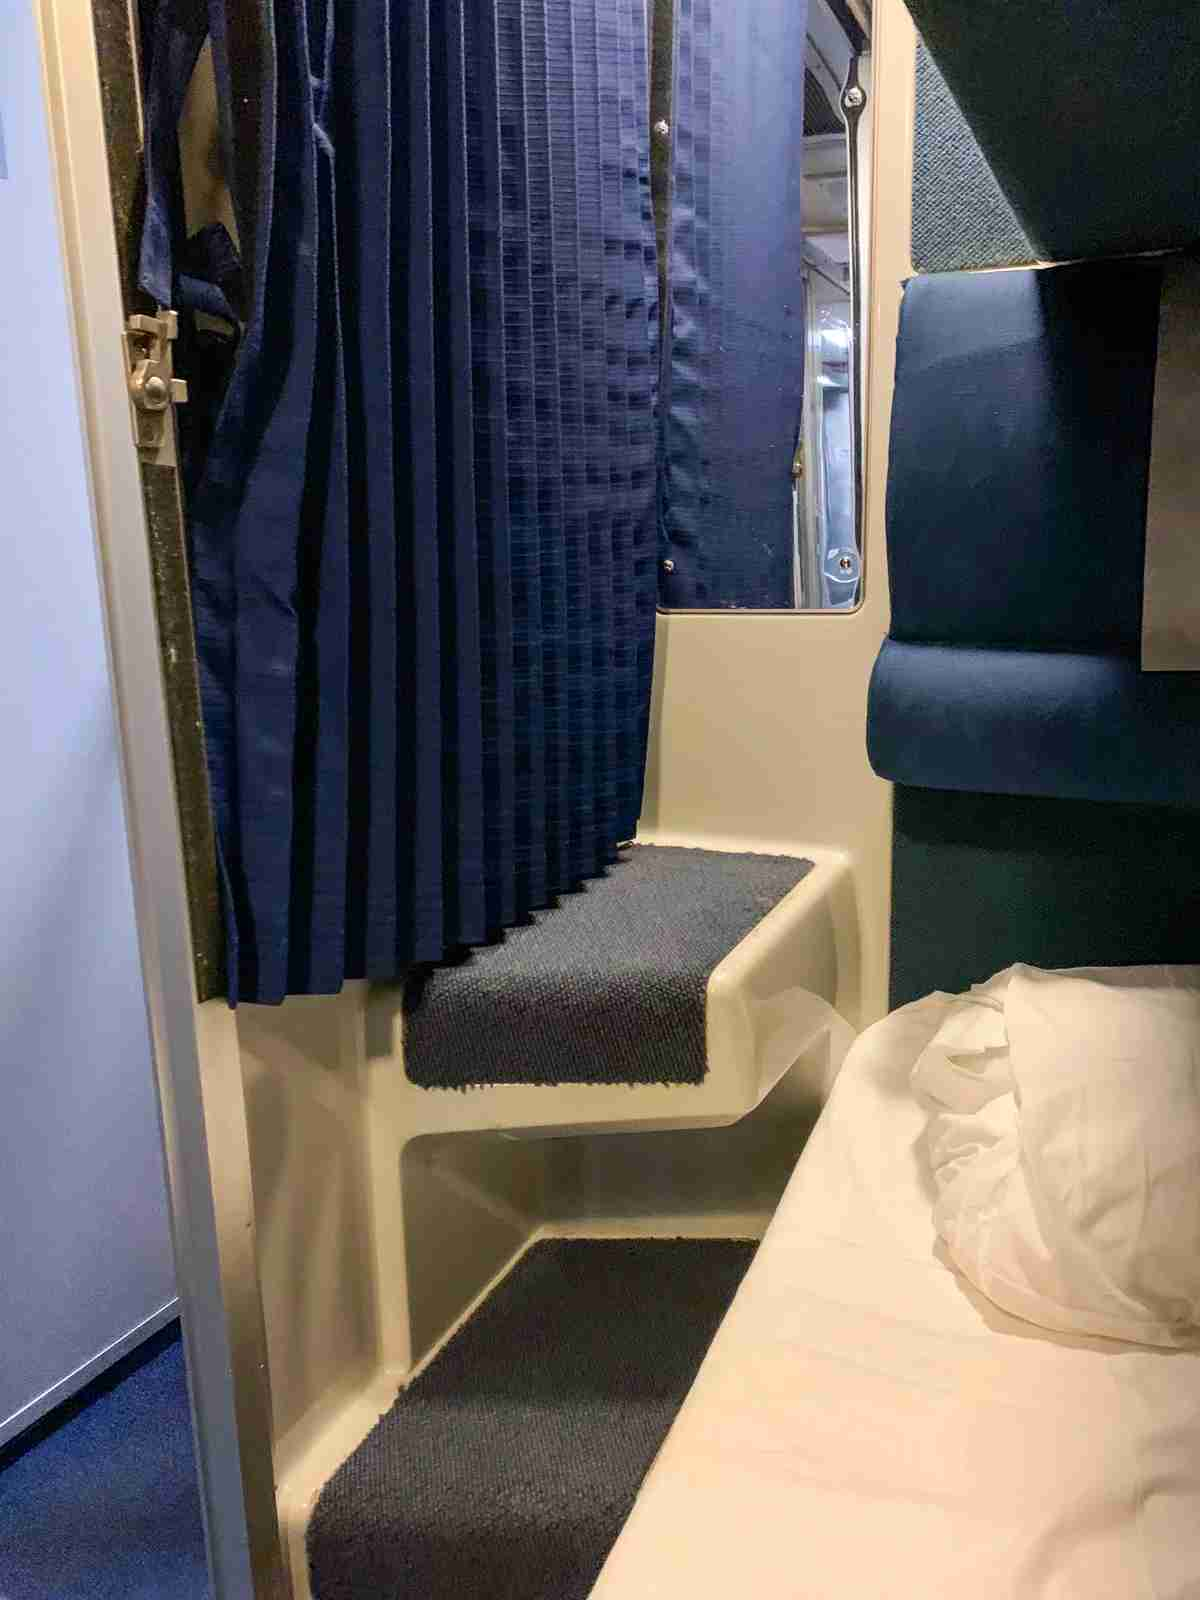 Steps to Upper Roomette Bunk (Photo by Ed Pizzarello / The Points Guy)